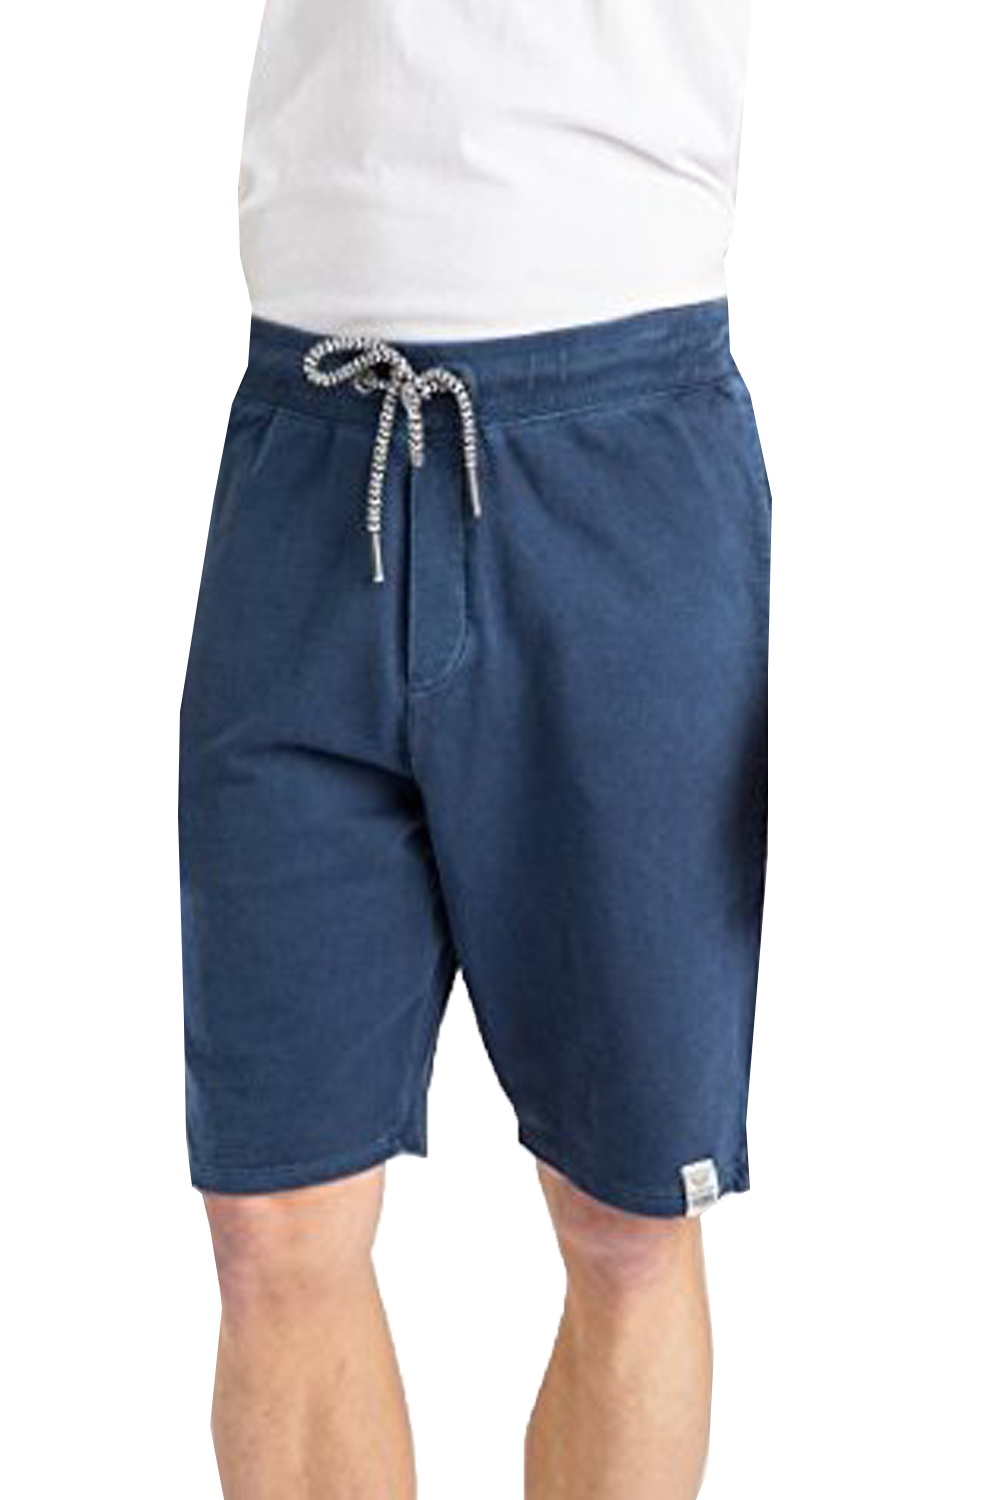 Find great deals on eBay for knee length shorts. Shop with confidence.